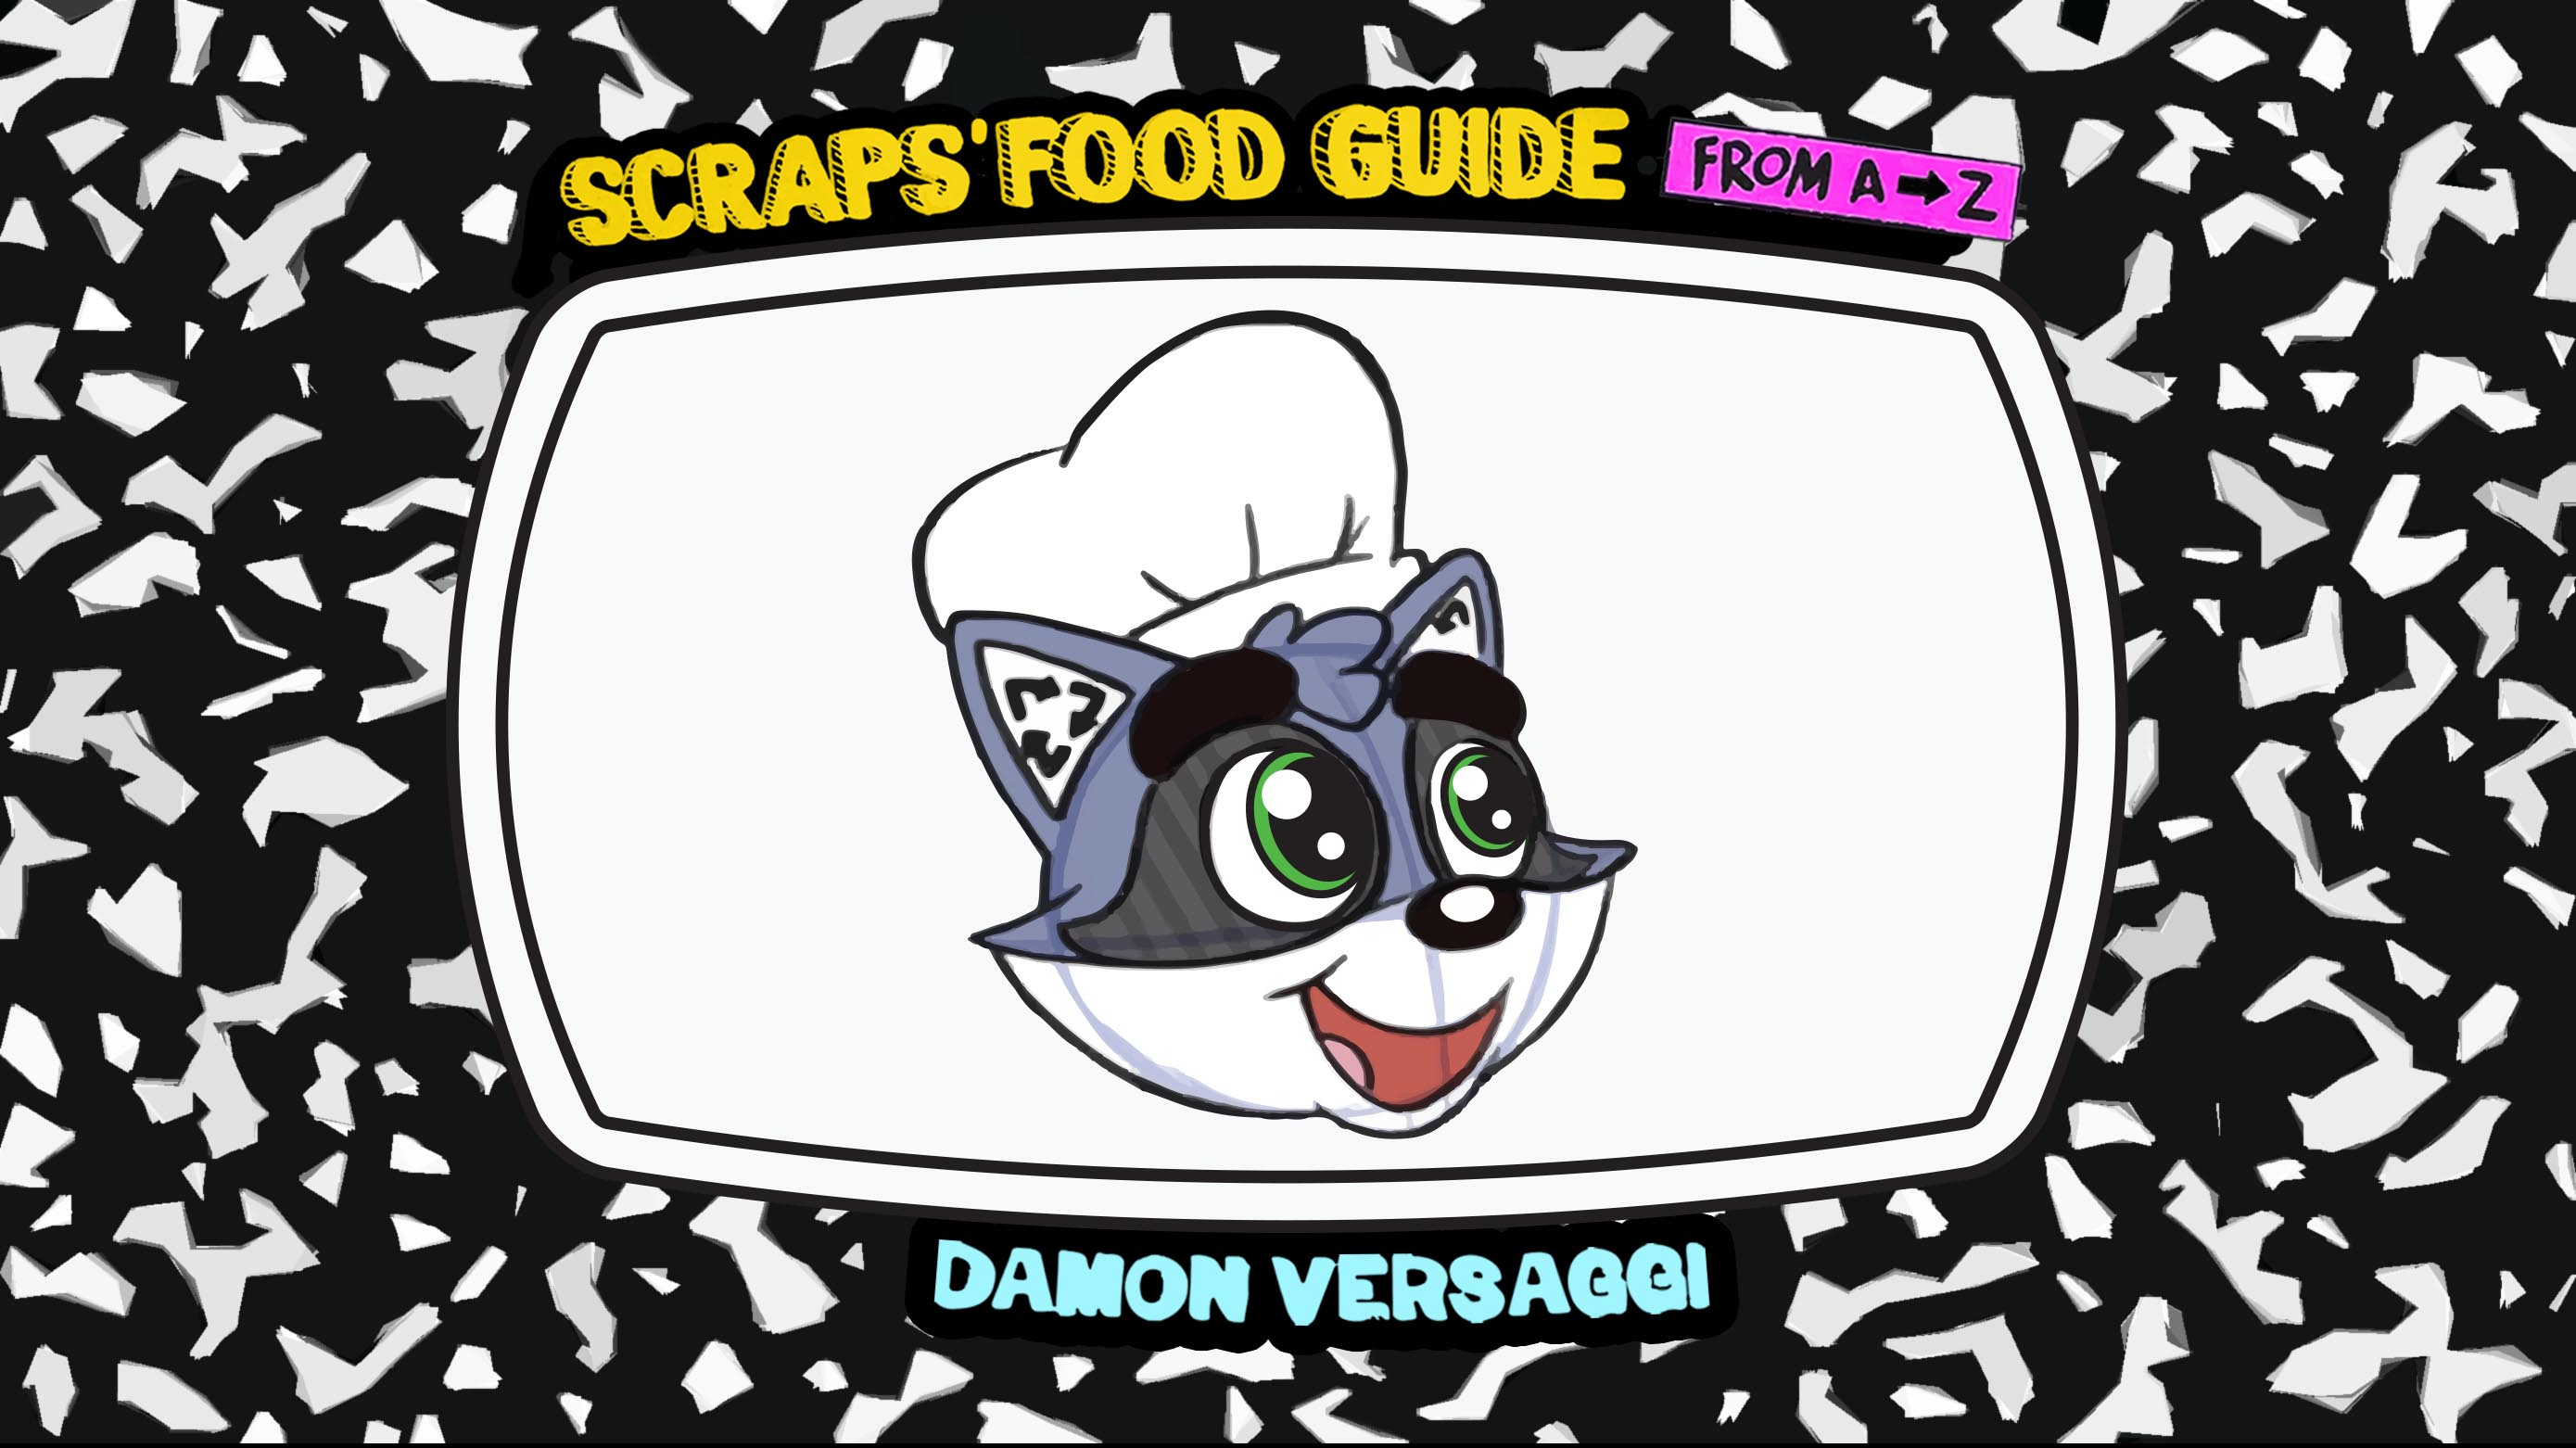 SCRAPS' FOOD GUIDE FROM A TO Z